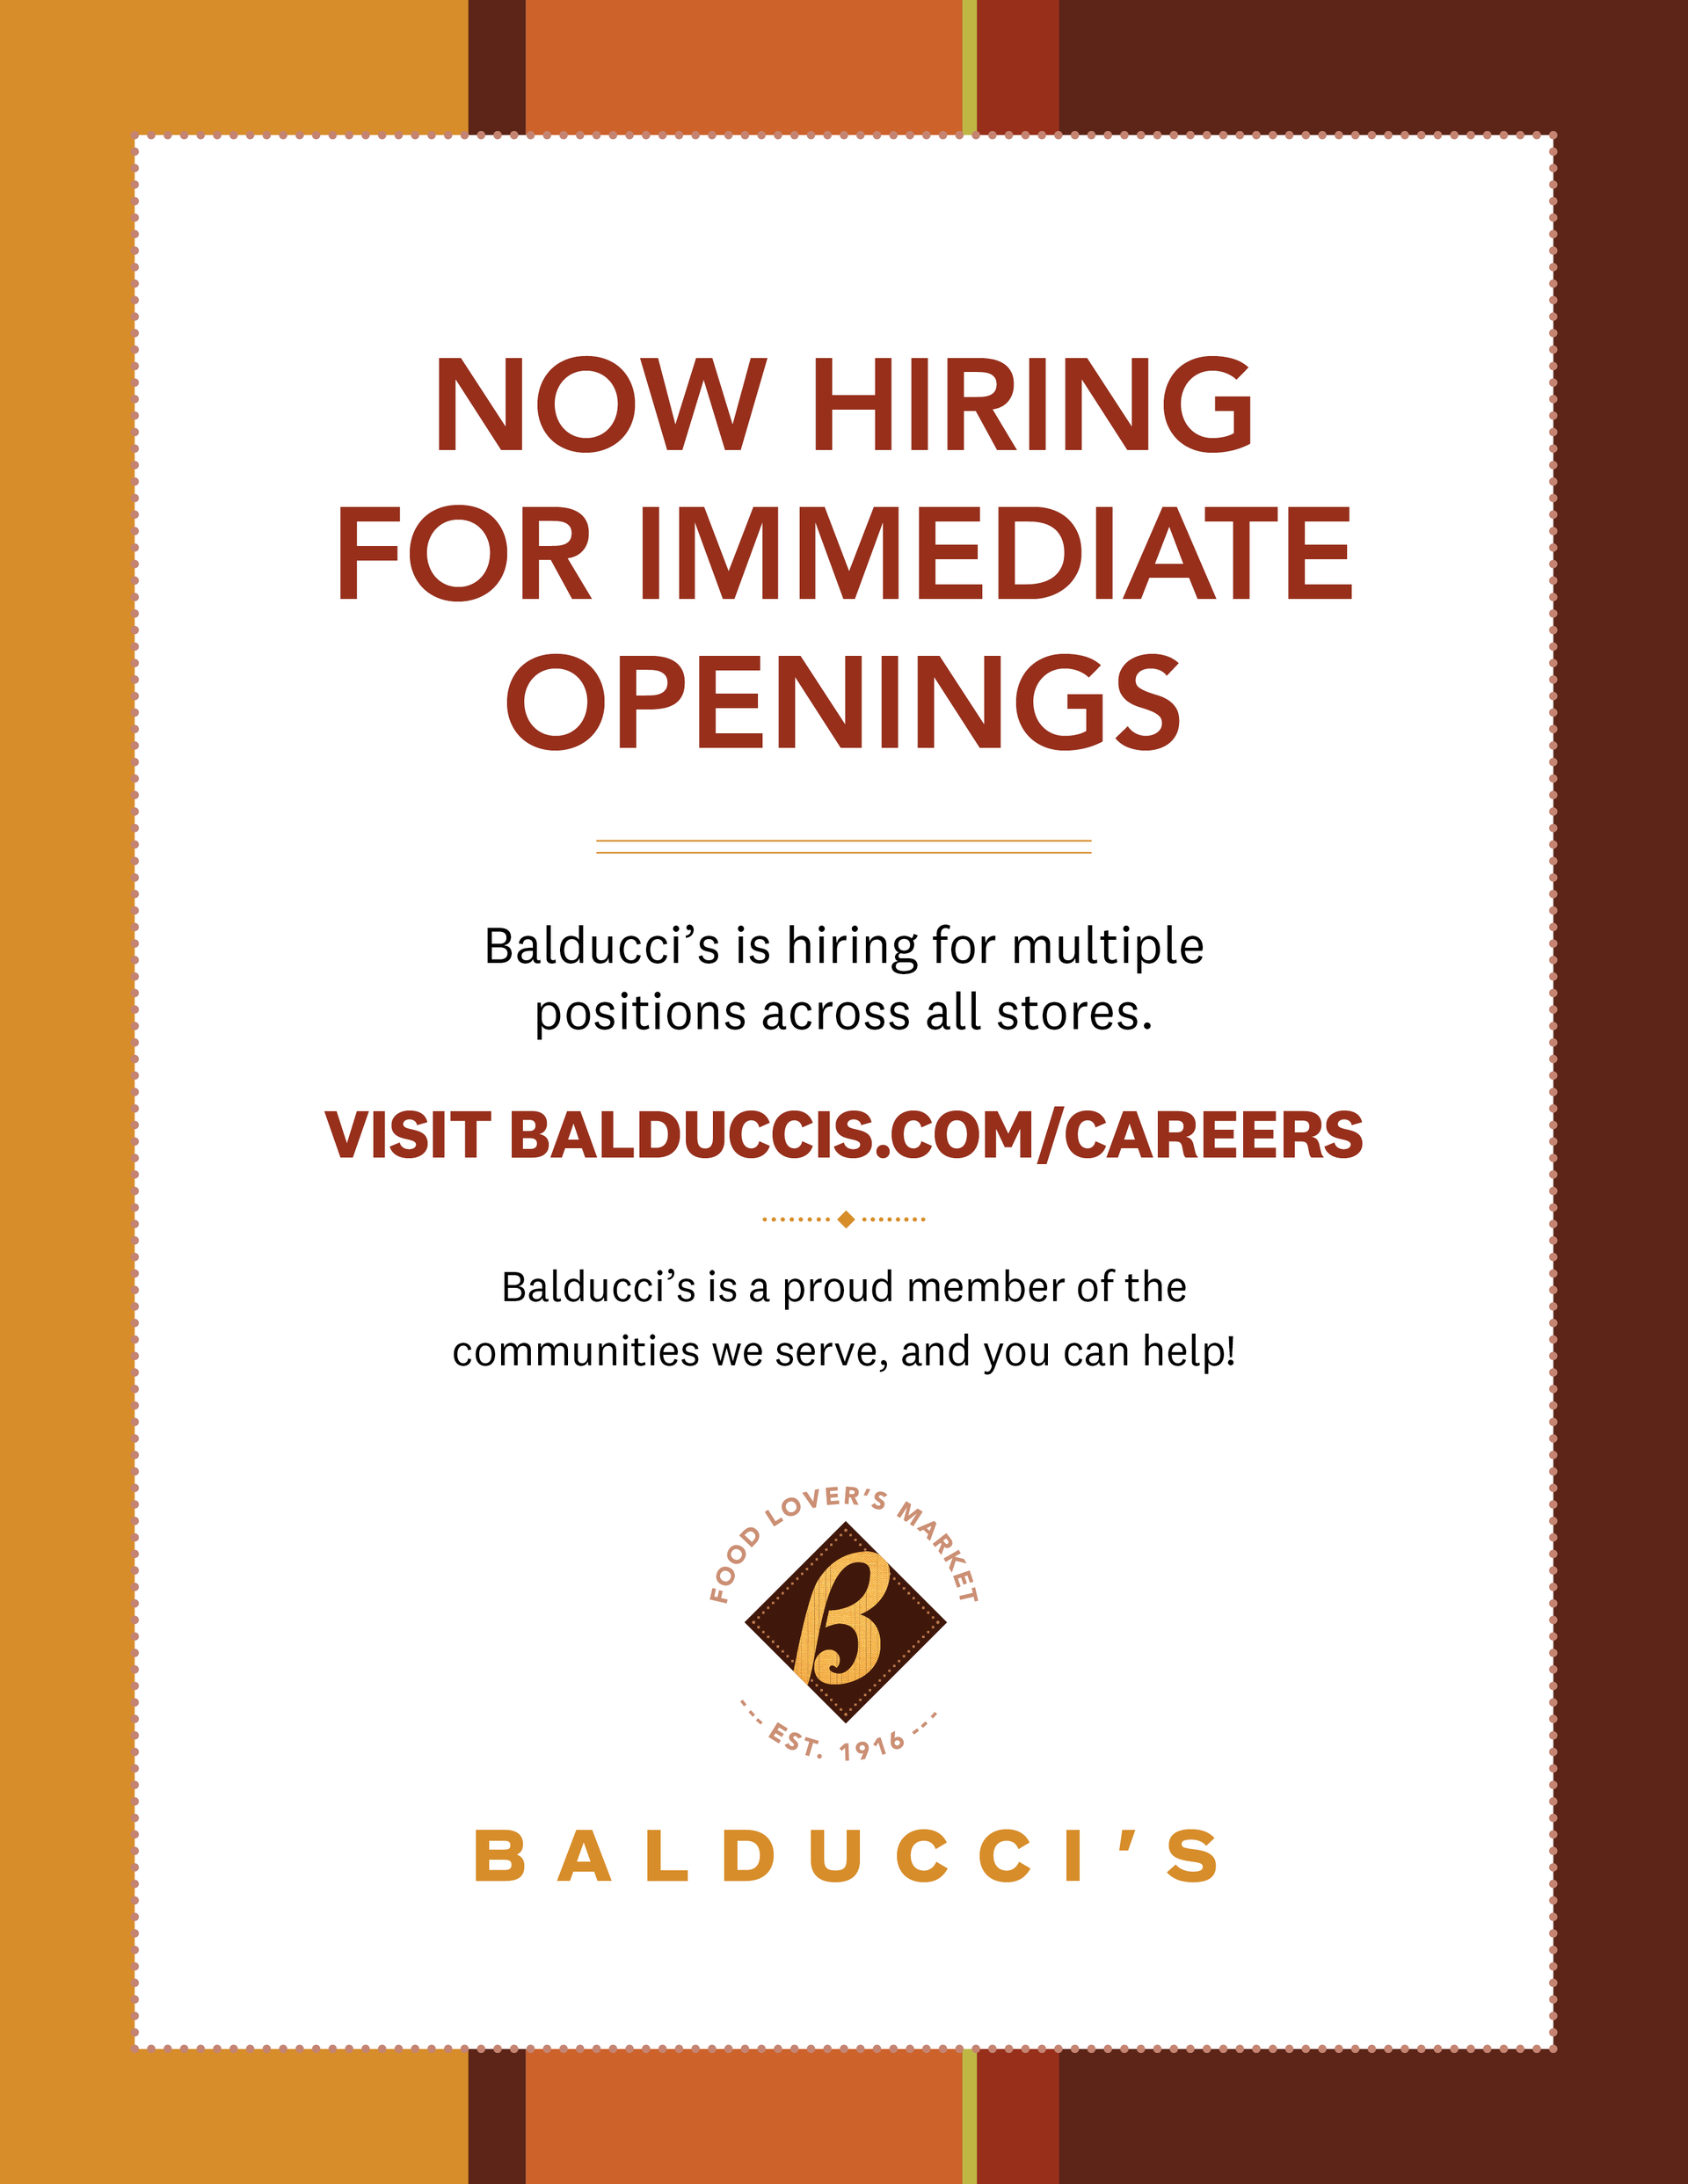 NOW HIRING FOR IMMEDIATE OPENINGS. Balducci's is hiring for multiple positions across all stores. Visit Balduccis.com/careers